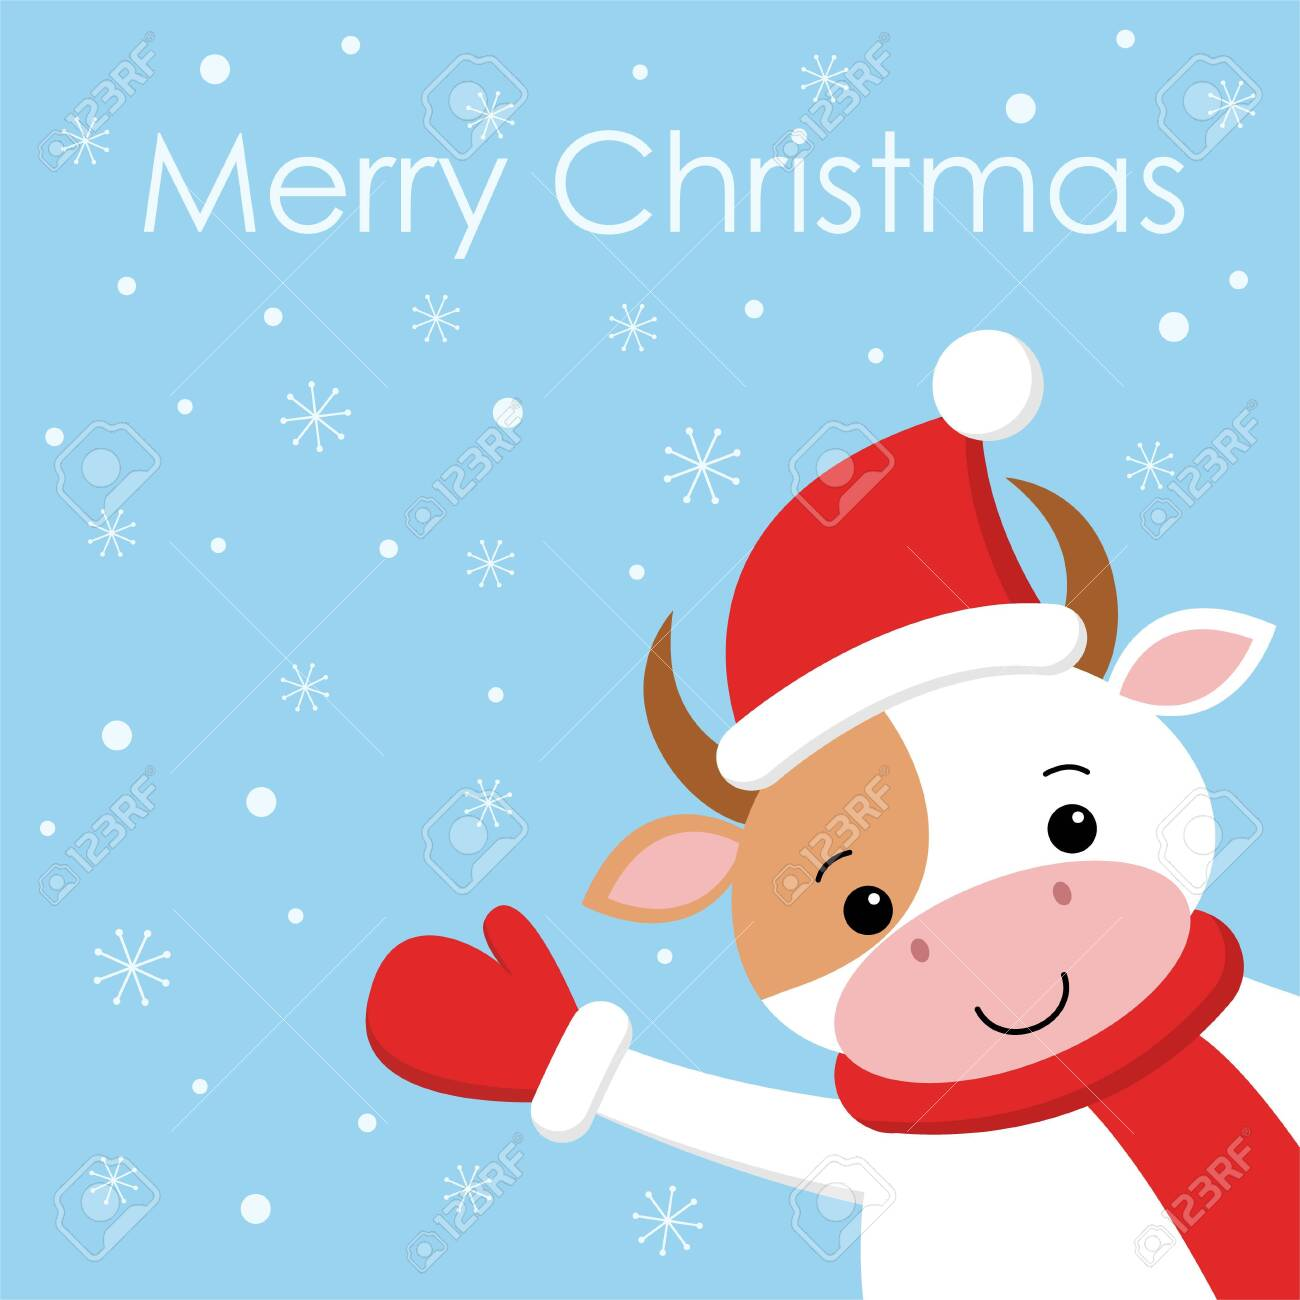 Merry Christmas Funny Images.Merry Christmas Funny Cute Cow On Background Snow Card In Cartoon